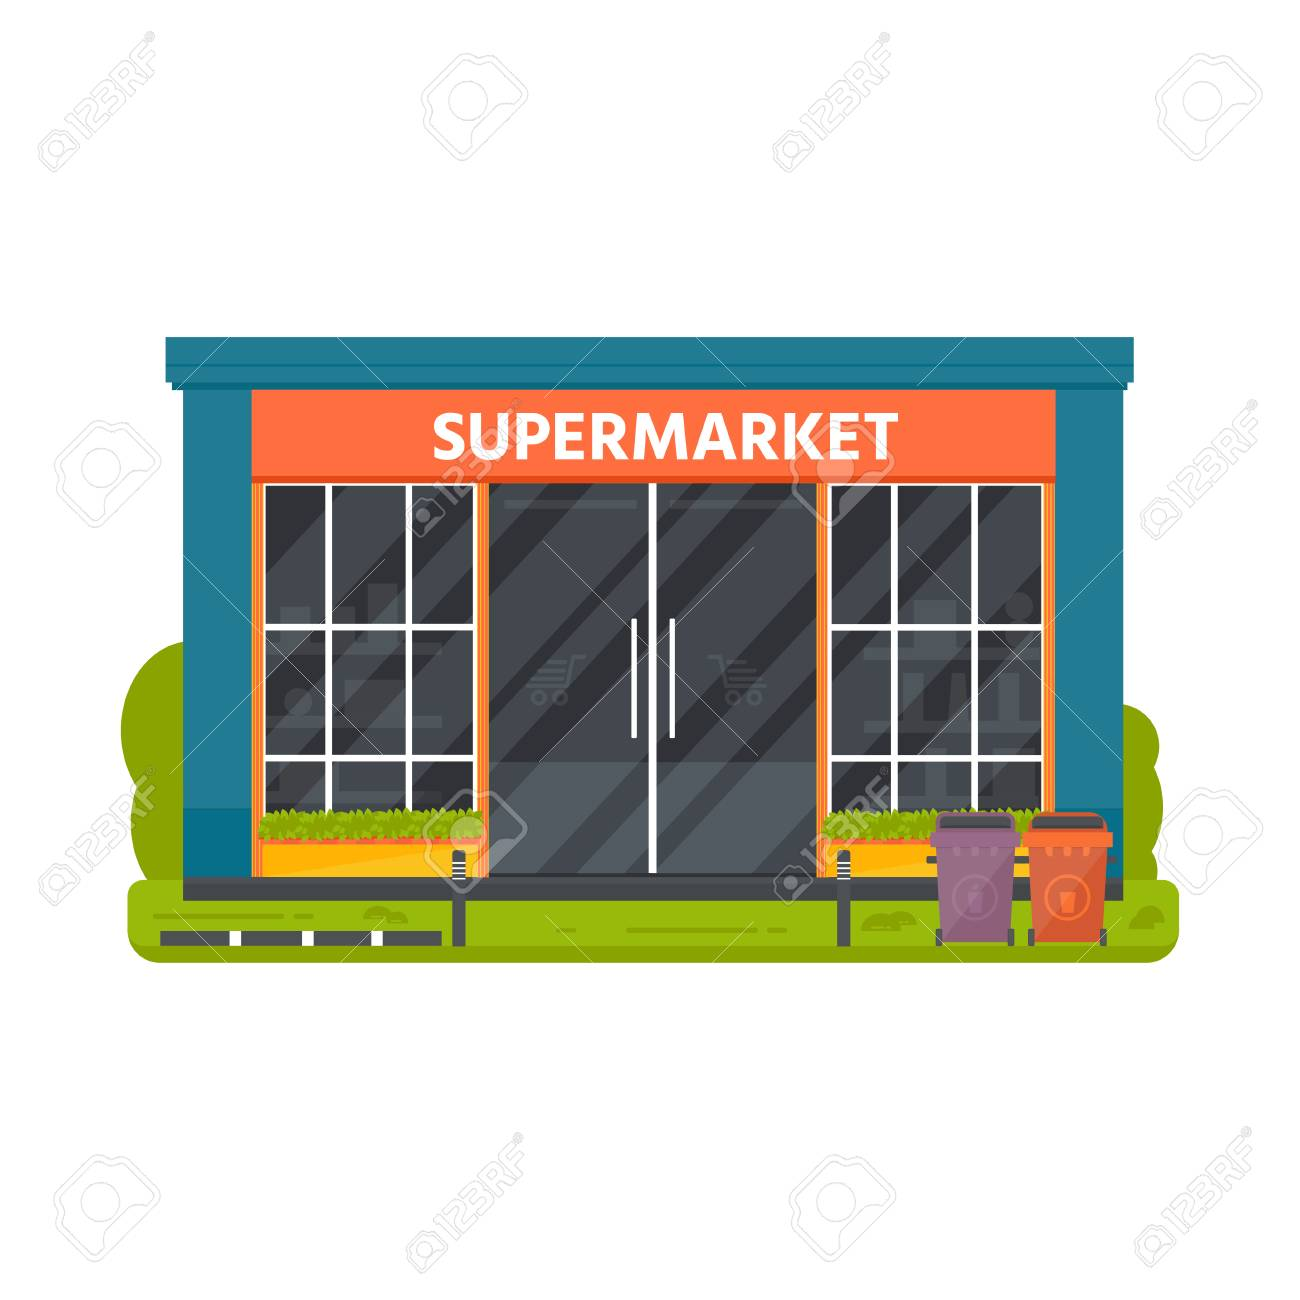 Vector Flat Design Restaurants Exterior And Shops Facade Supermarket Royalty Free Cliparts Vectors And Stock Illustration Image 103403821